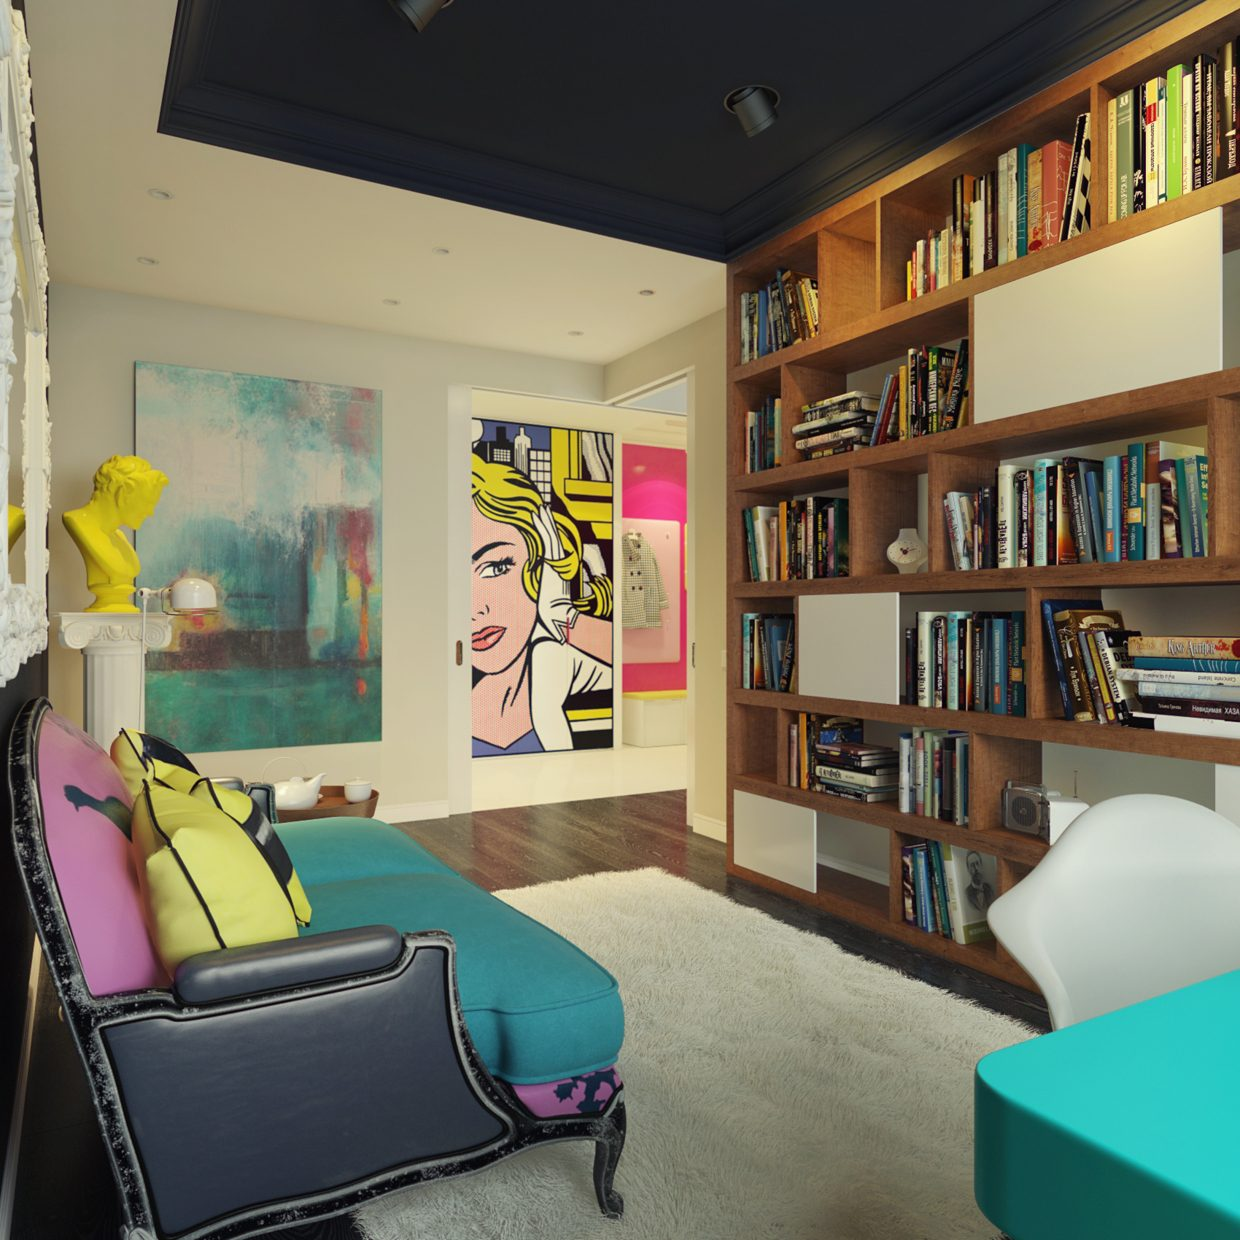 Interior Design Ideas: Modern Pop Art Style Apartment